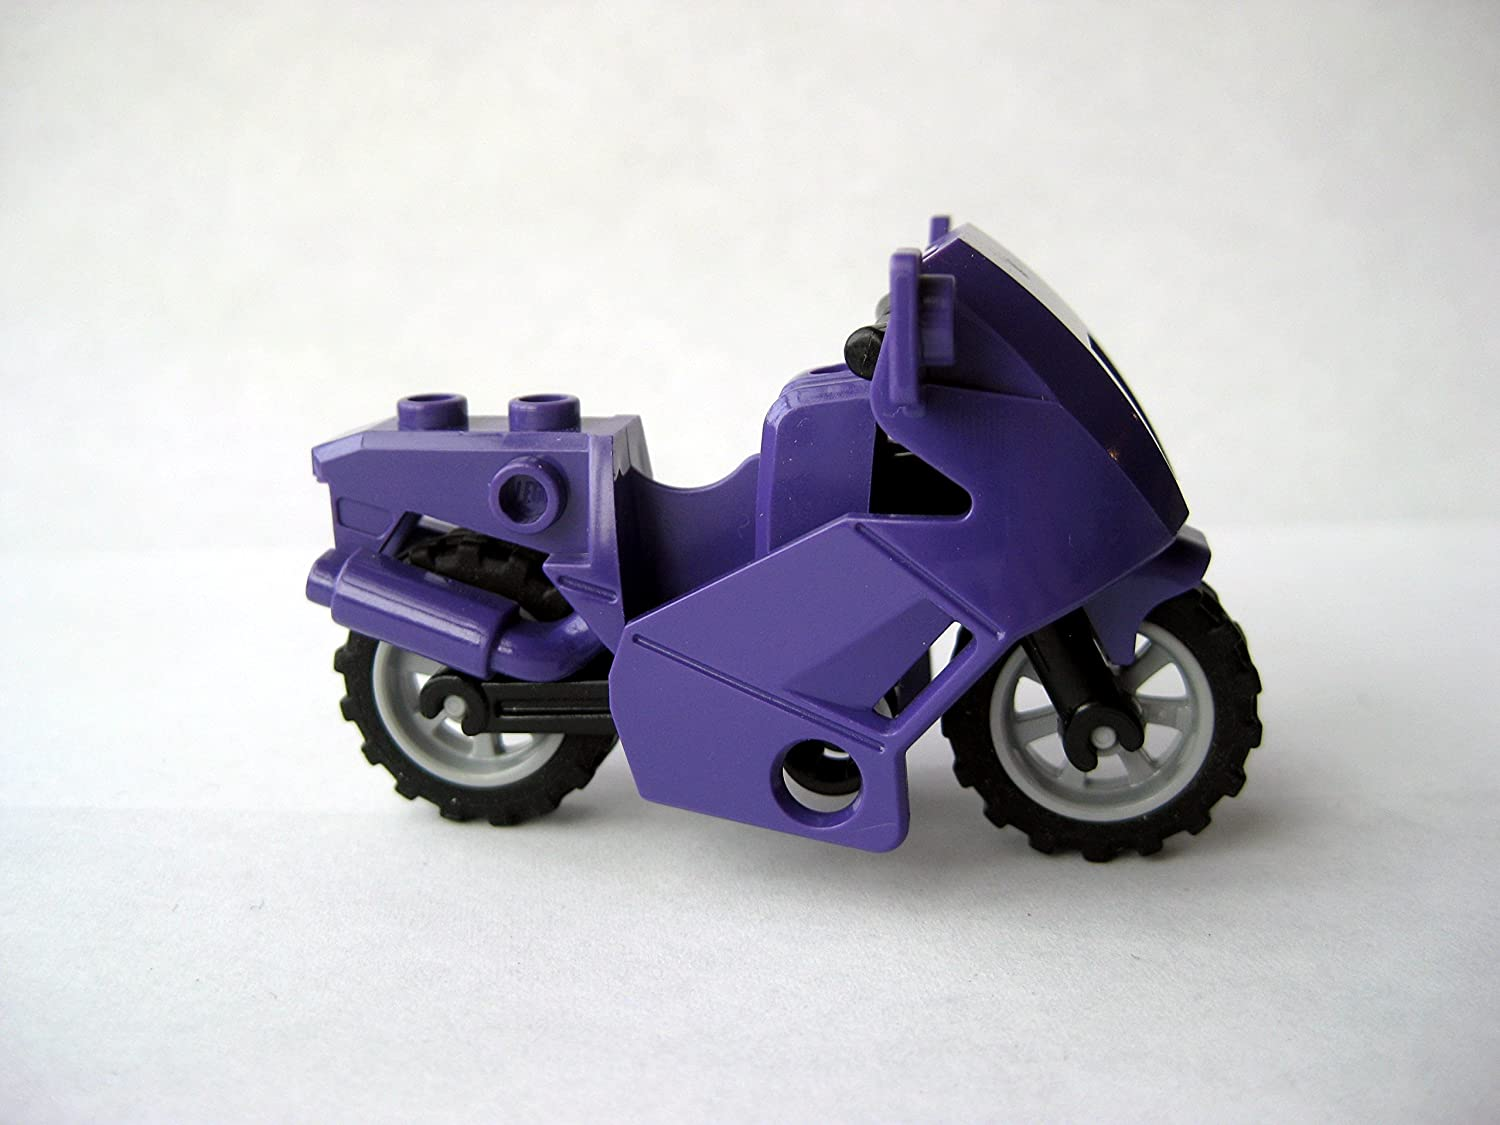 LEGO Purple Motorcycle for Minifigures - Catwoman Style